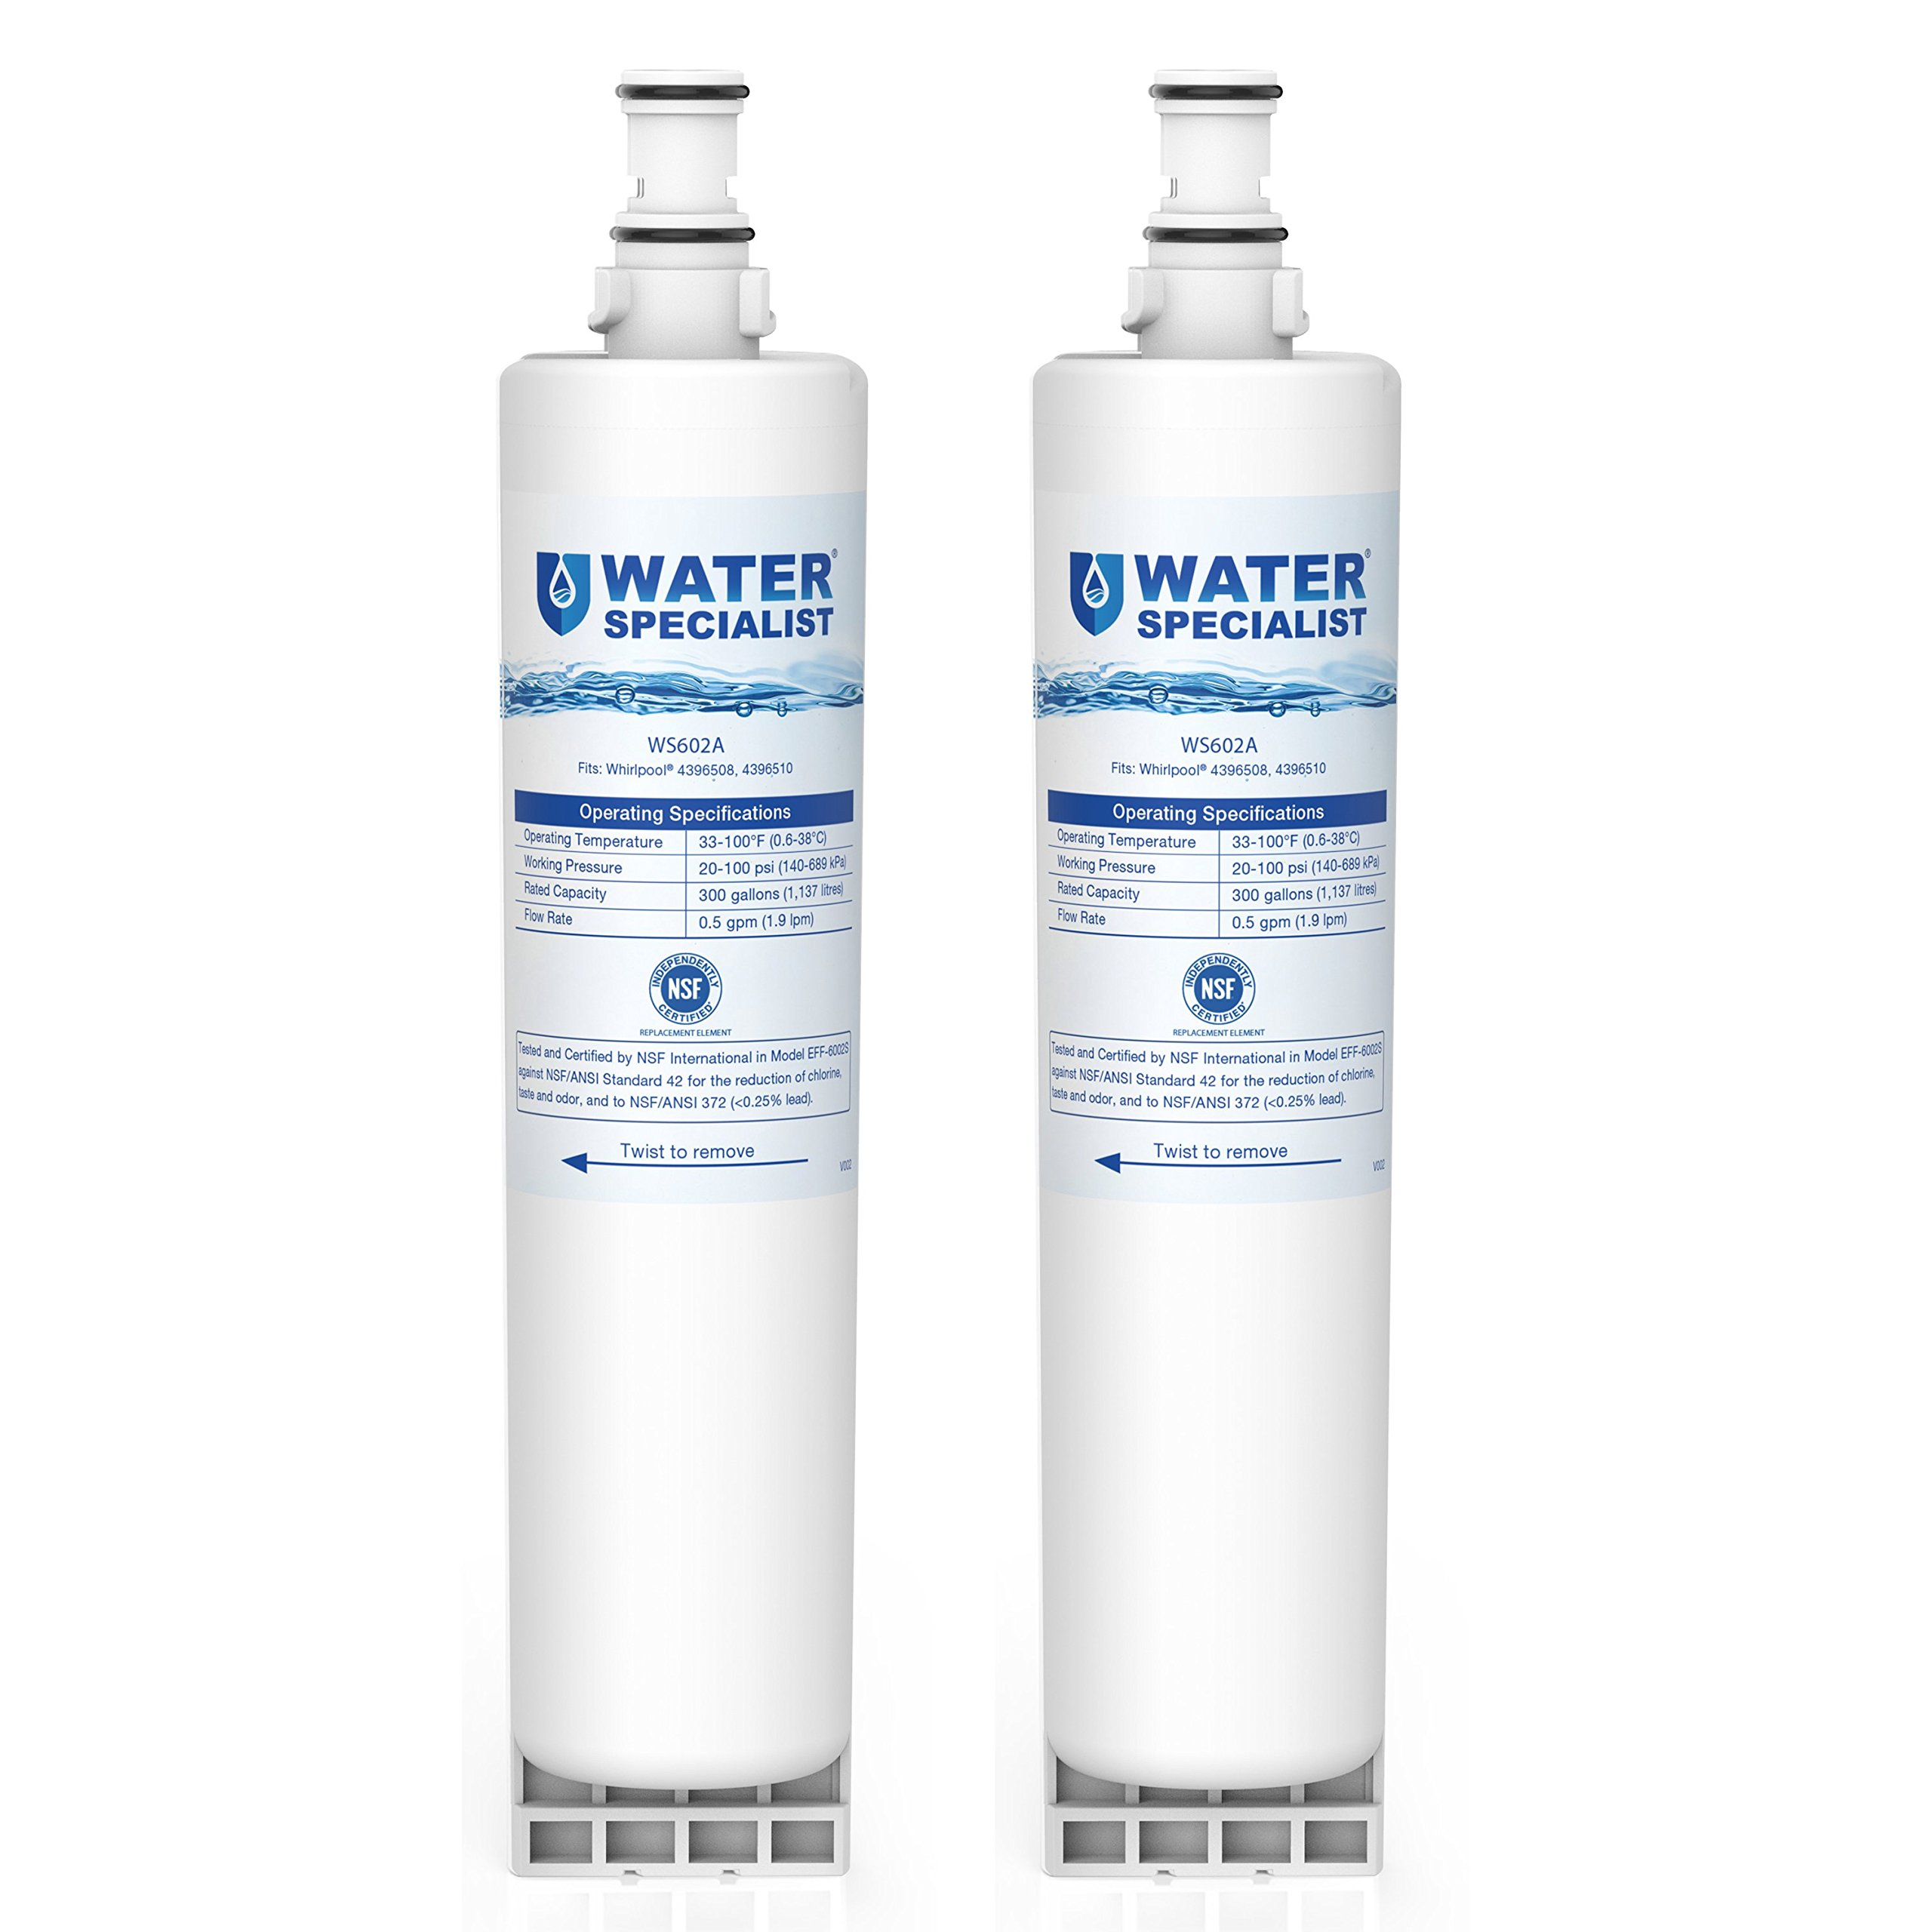 Waterspecialist 4396508 Replacement Refrigerator Water Filter, Compatible with Whirlpool 4396508, EDR5RXD1, EveryDrop Filter 5, 4396510, NLC240V, 4396508P, 4392857, WF-4396508, Kenmore 46-9010, 2 Pack